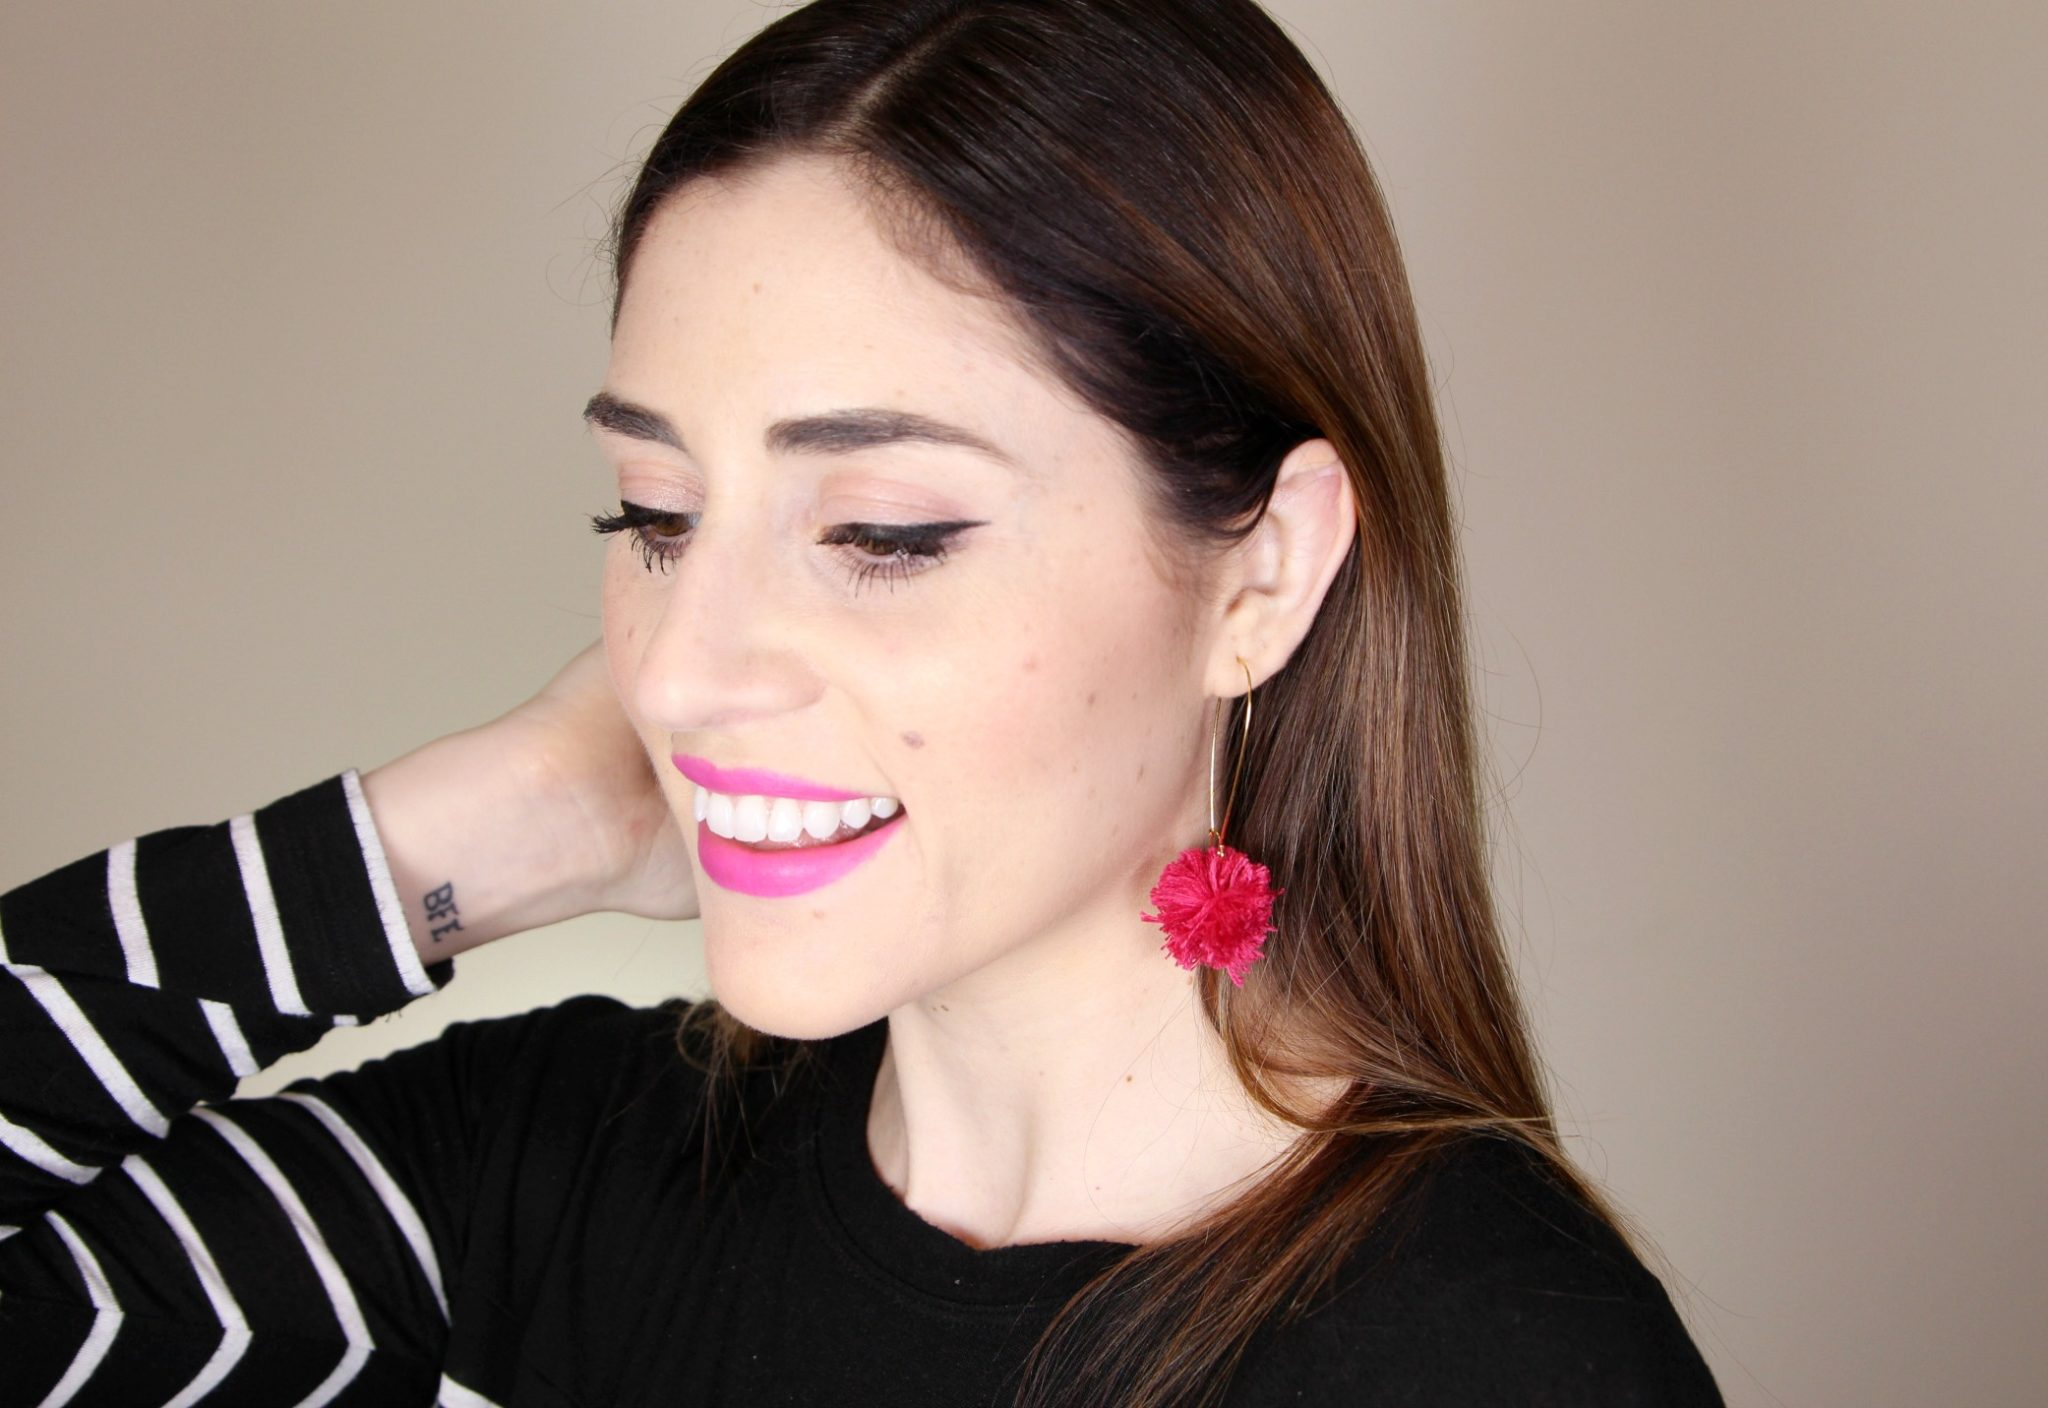 DIY Pom Pom Earrings | How to Make fun pompom earrings | CT Blogger